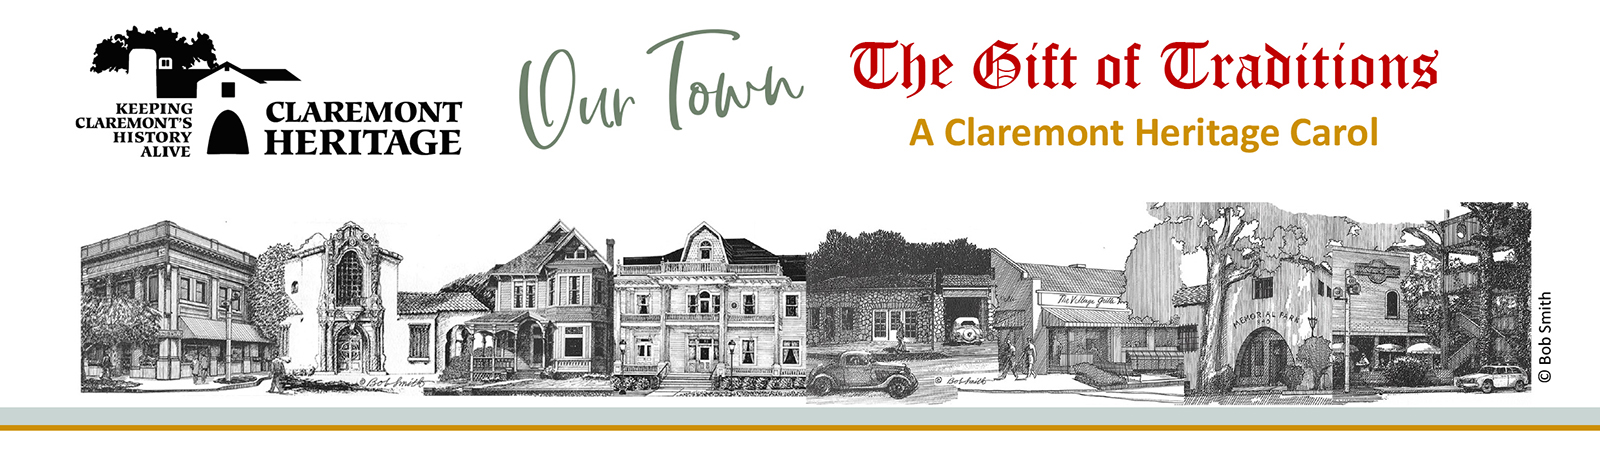 Claremont Heritage Our Town - The Gift of Traditions - A Claremont Heritage Carol